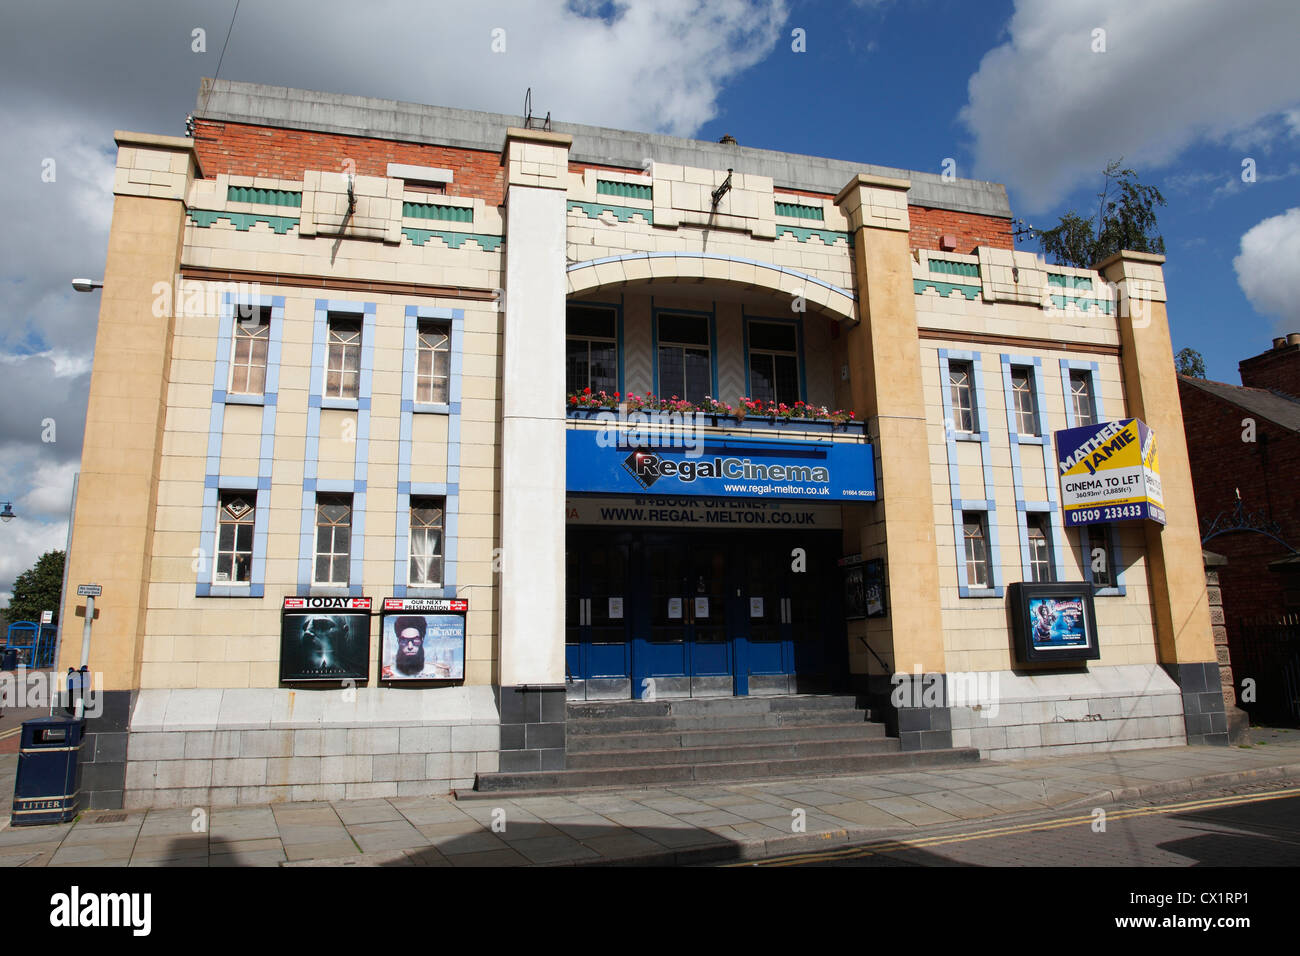 The Regal Cinema, Melton Mowbray, Leicestershire, England, U.K. - Stock Image